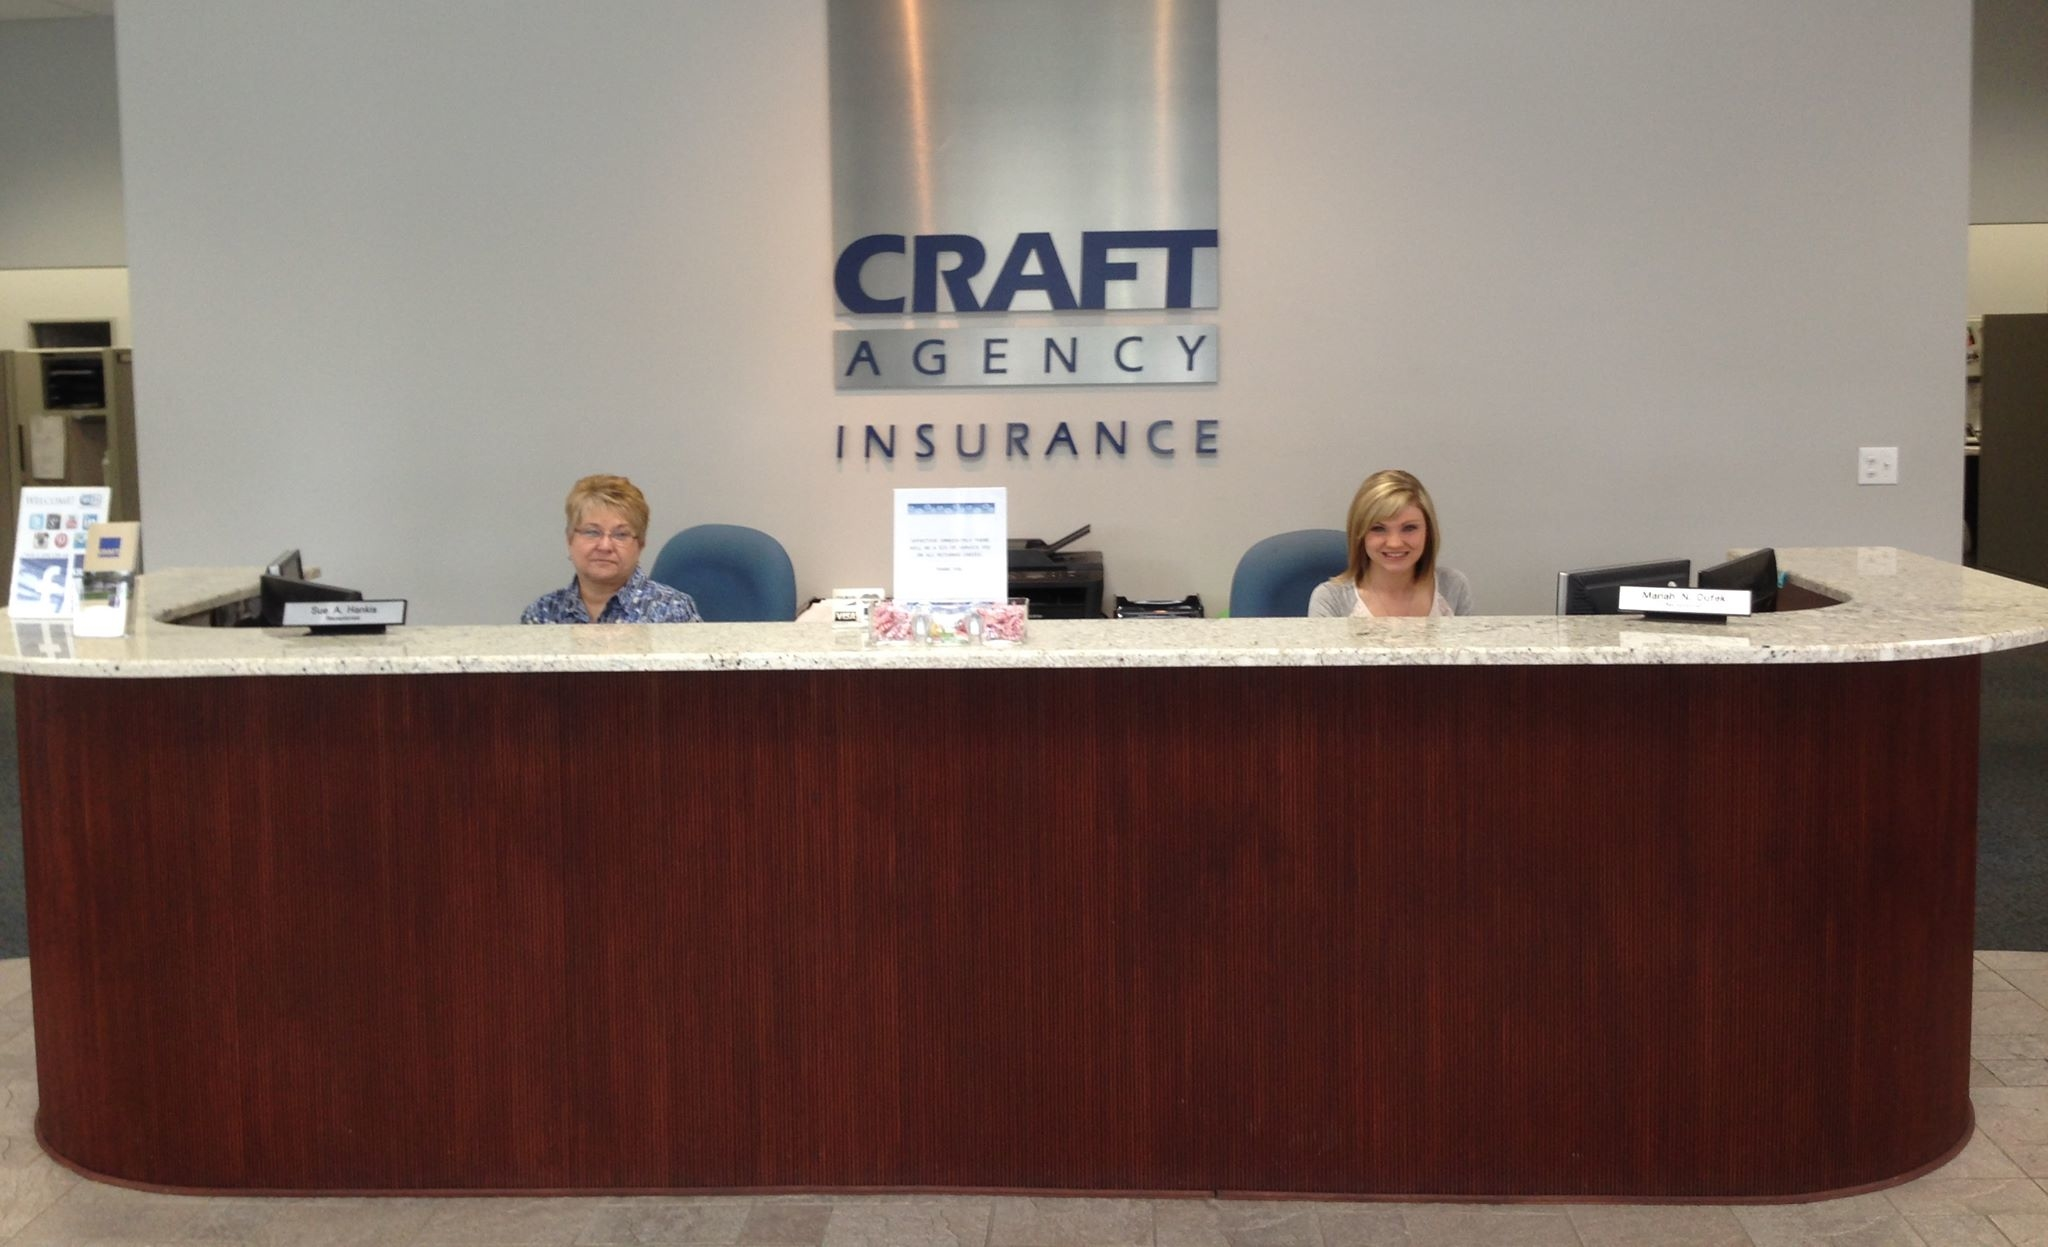 The Craft Agency, Inc. image 2